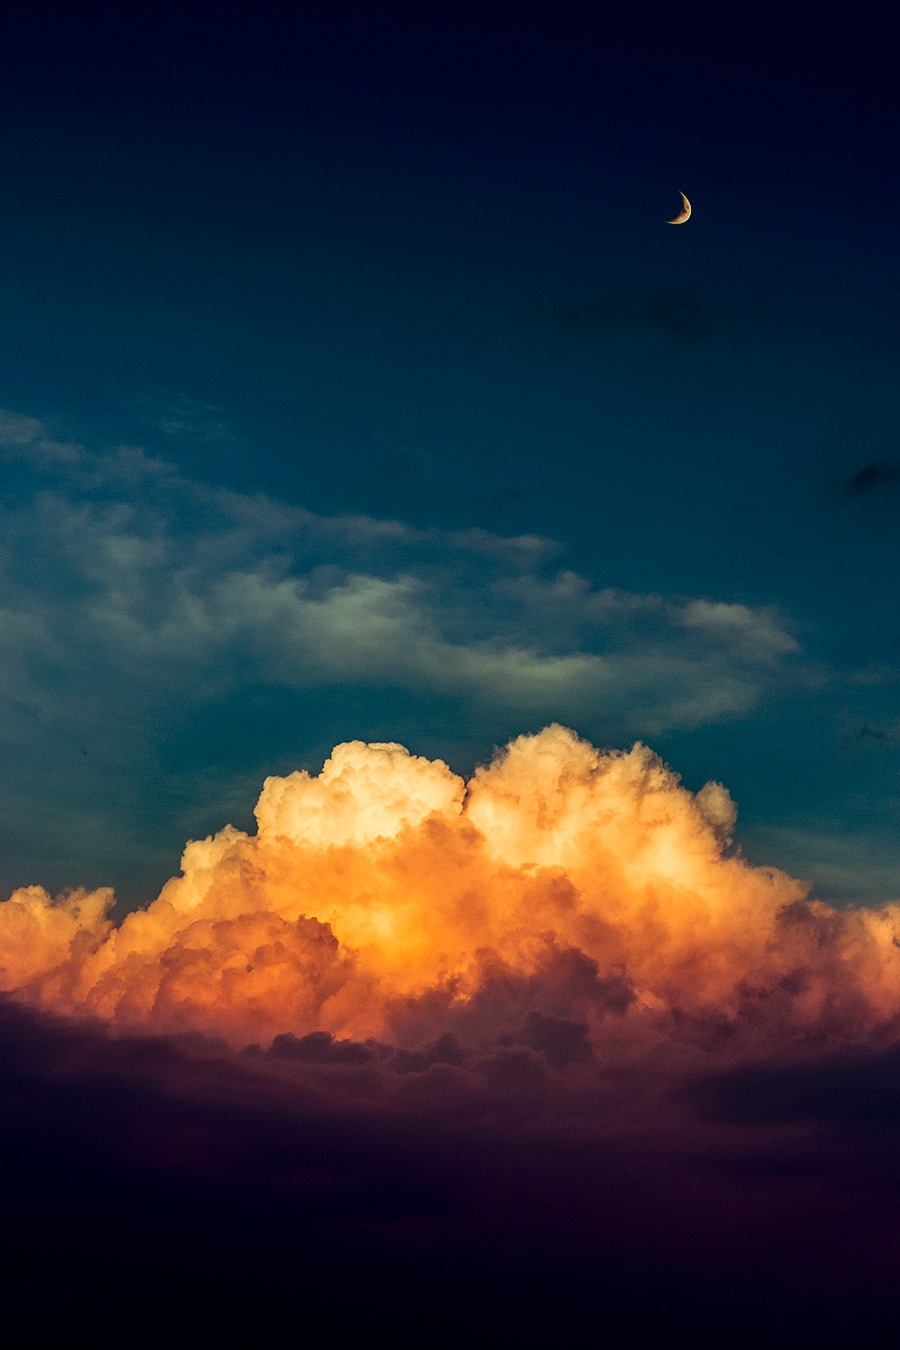 Mountains of clouds by Marc Sendra